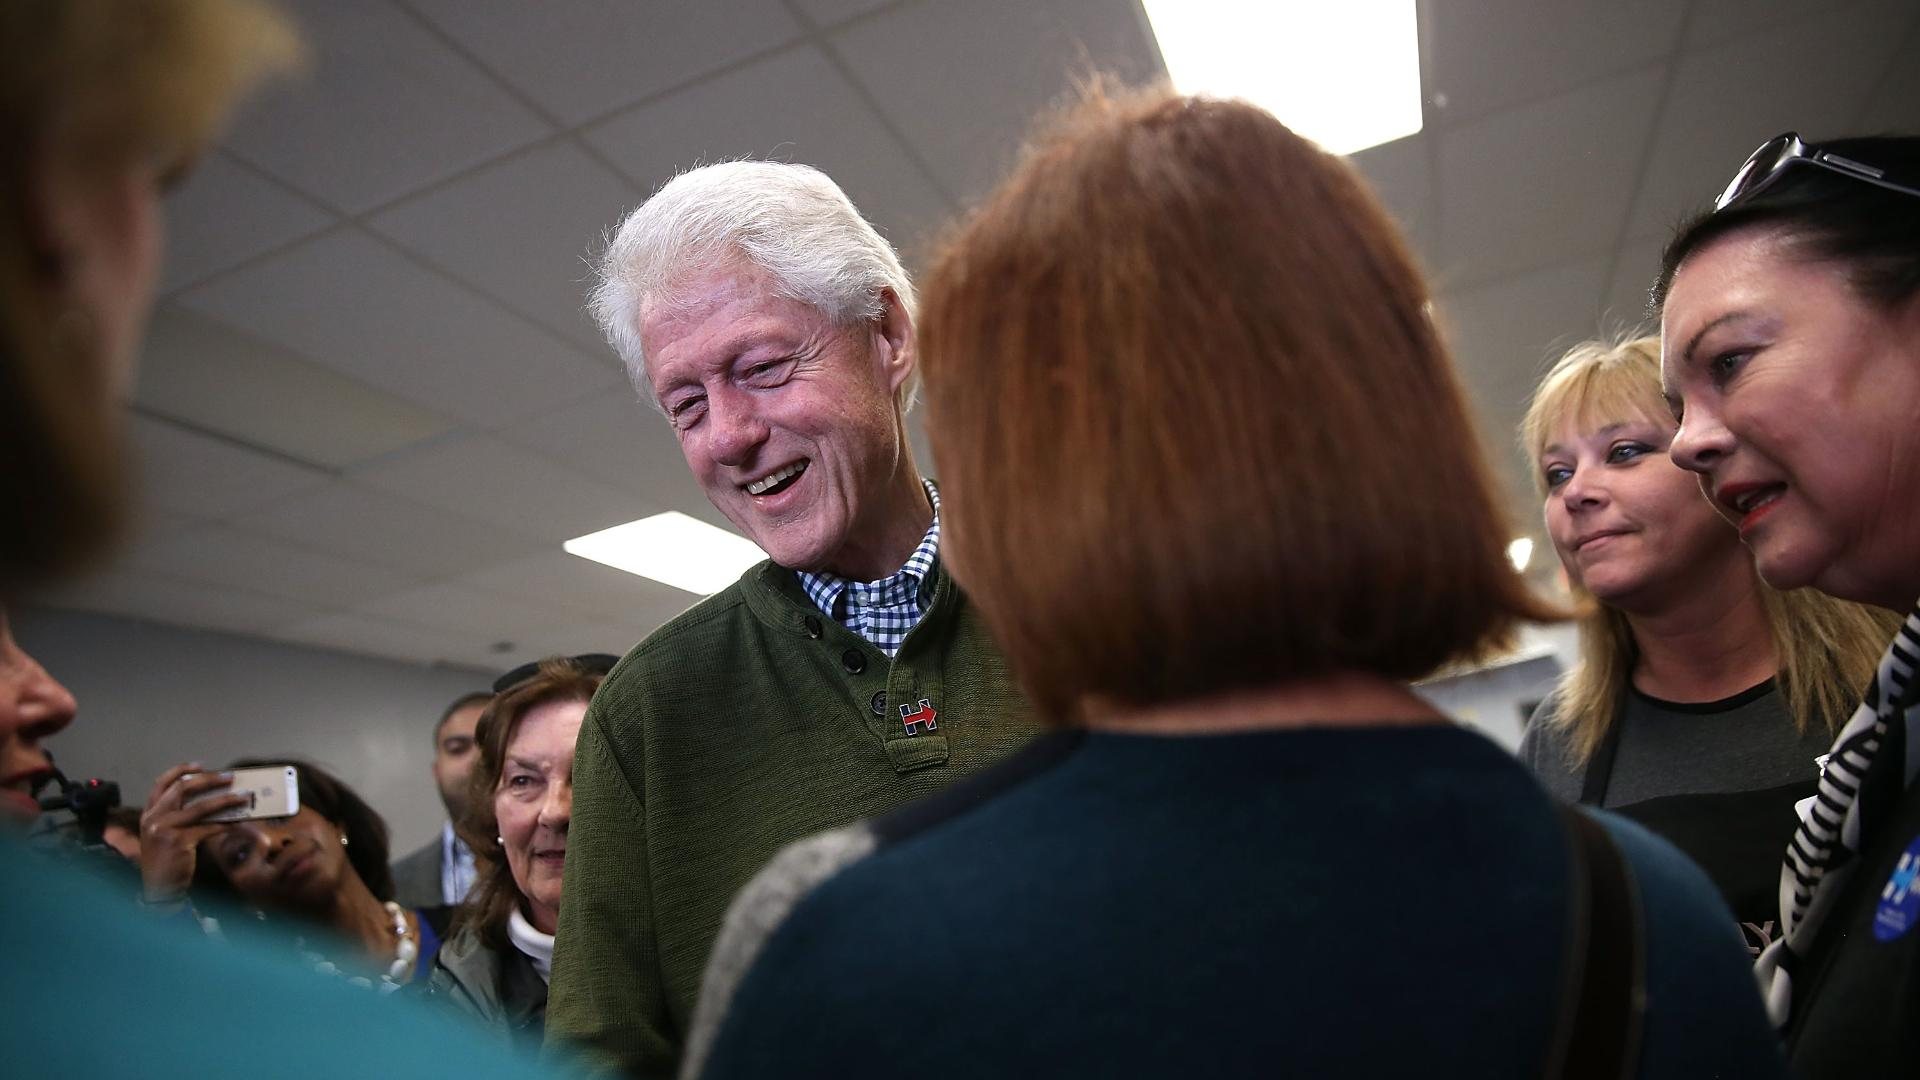 Eight years later, Bill Clinton is causing headaches for his wife again